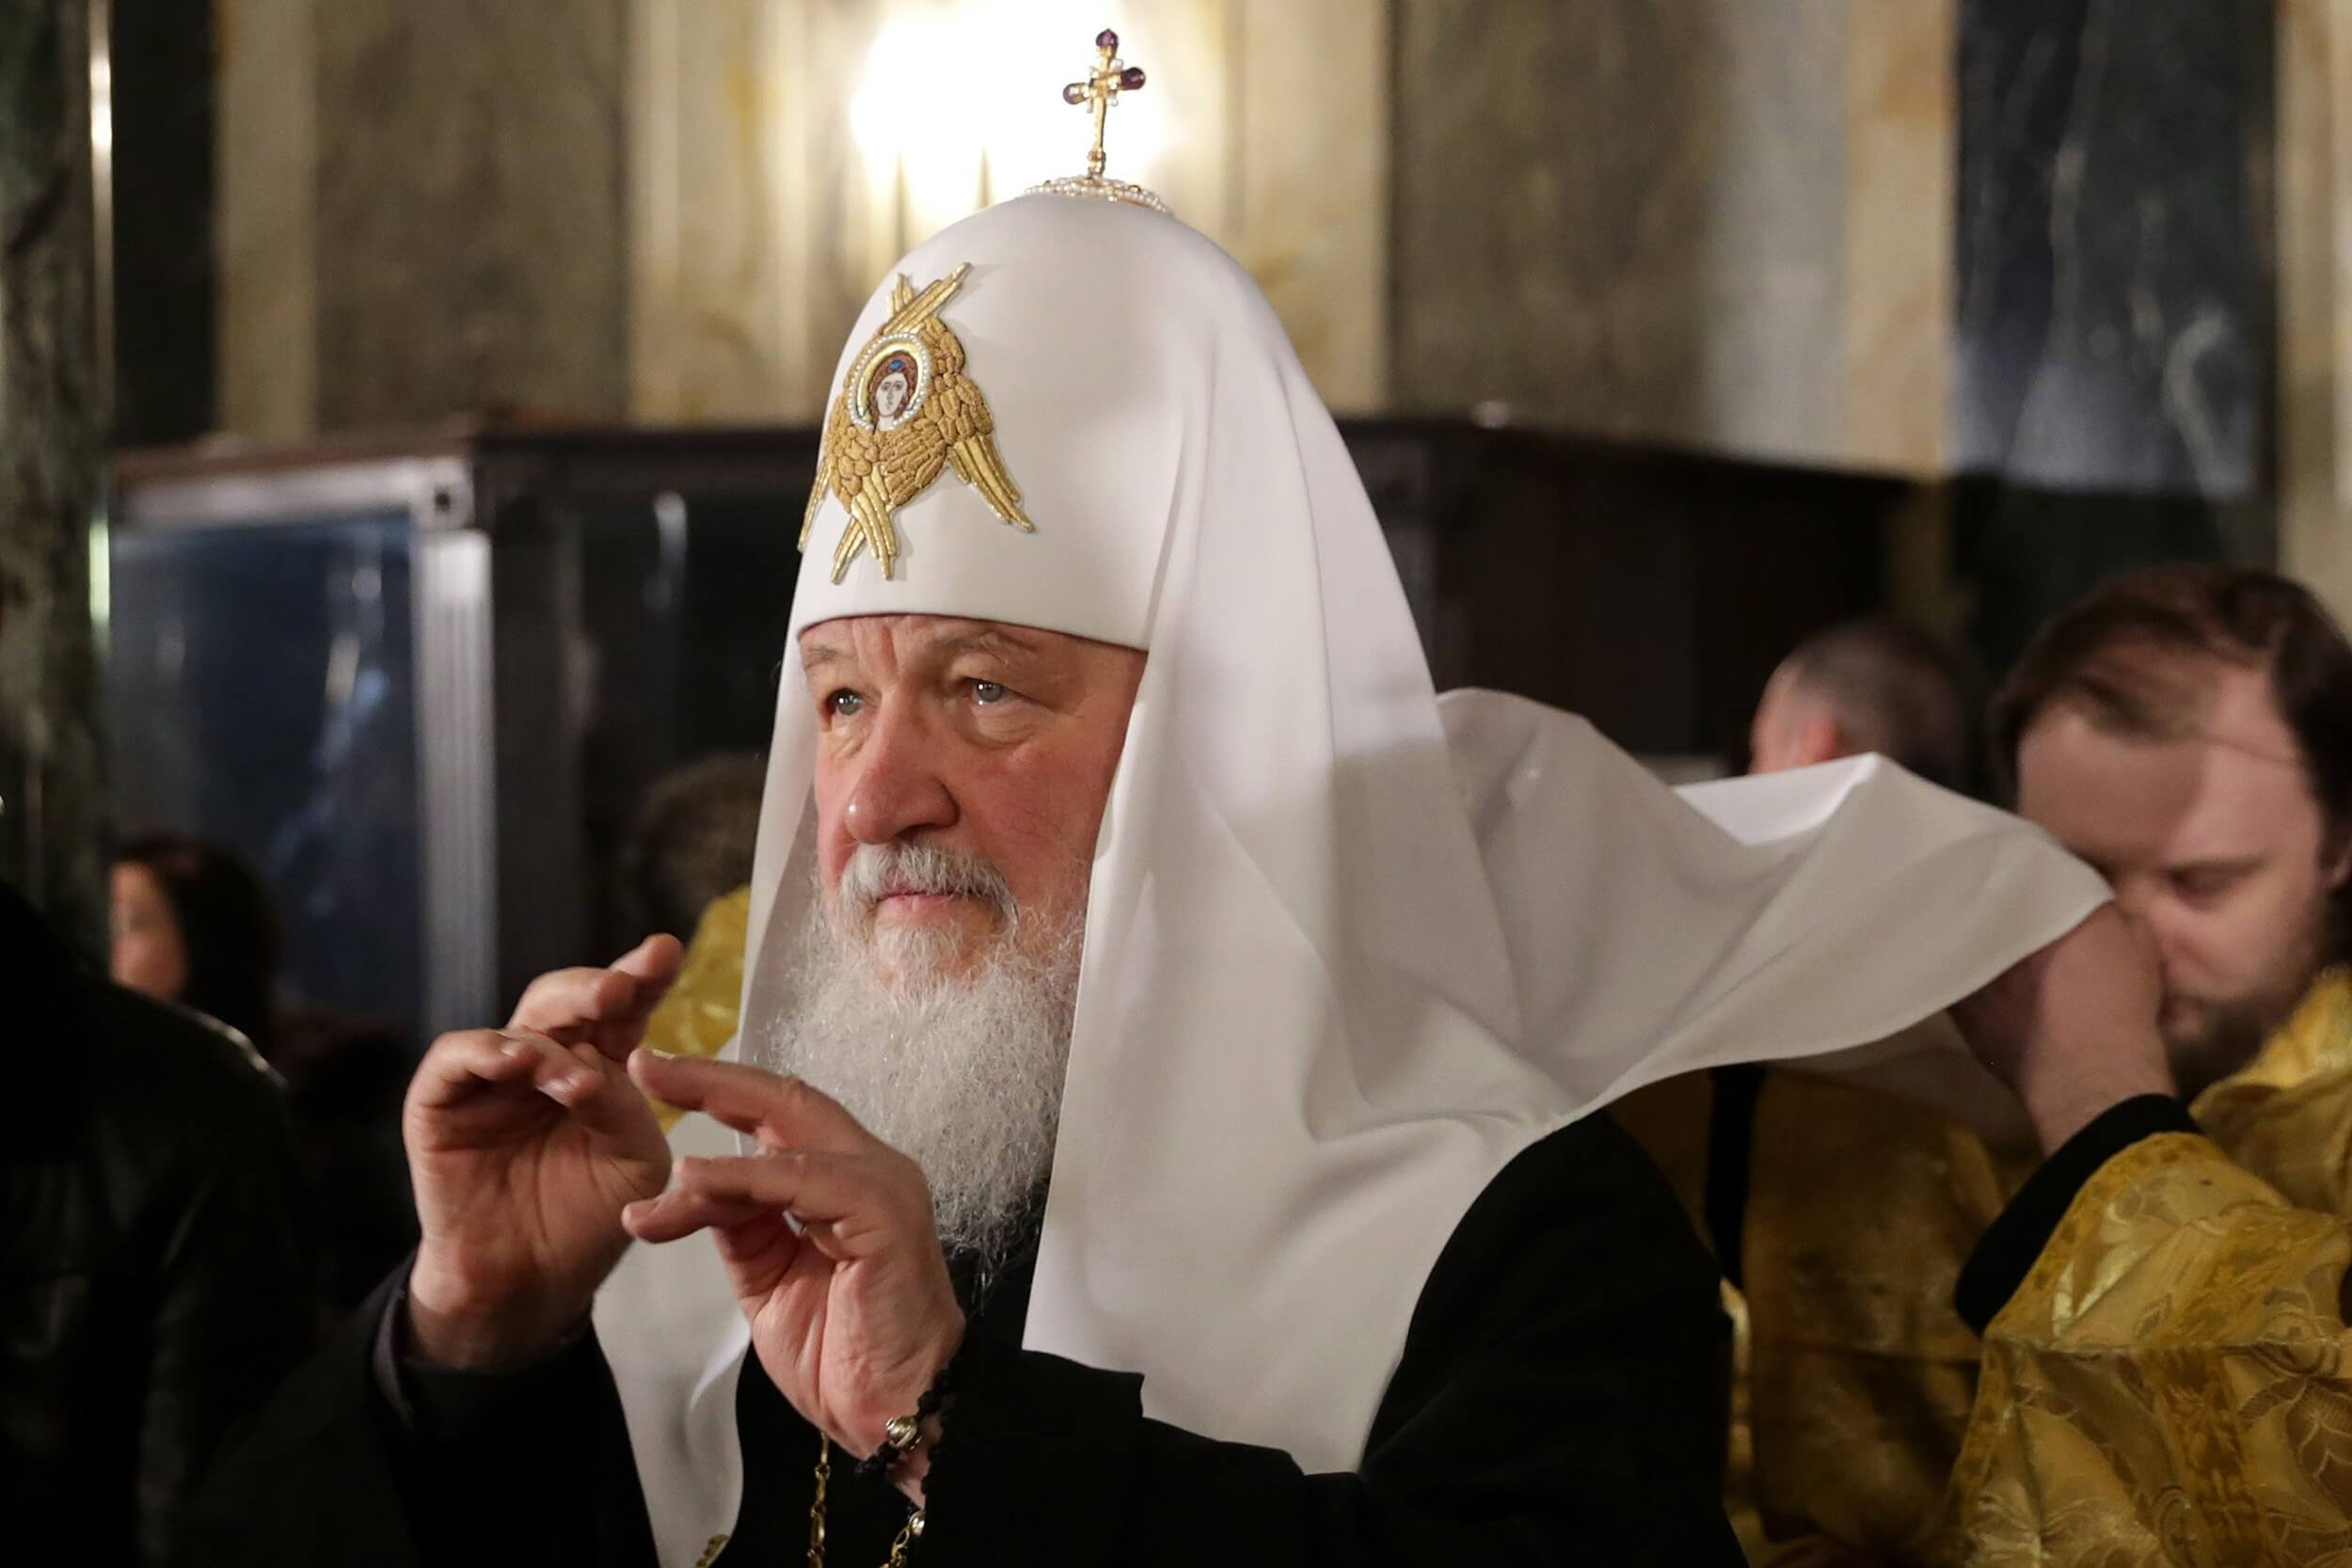 Russian church leader warns that reliance on technology could bring about the Antichrist